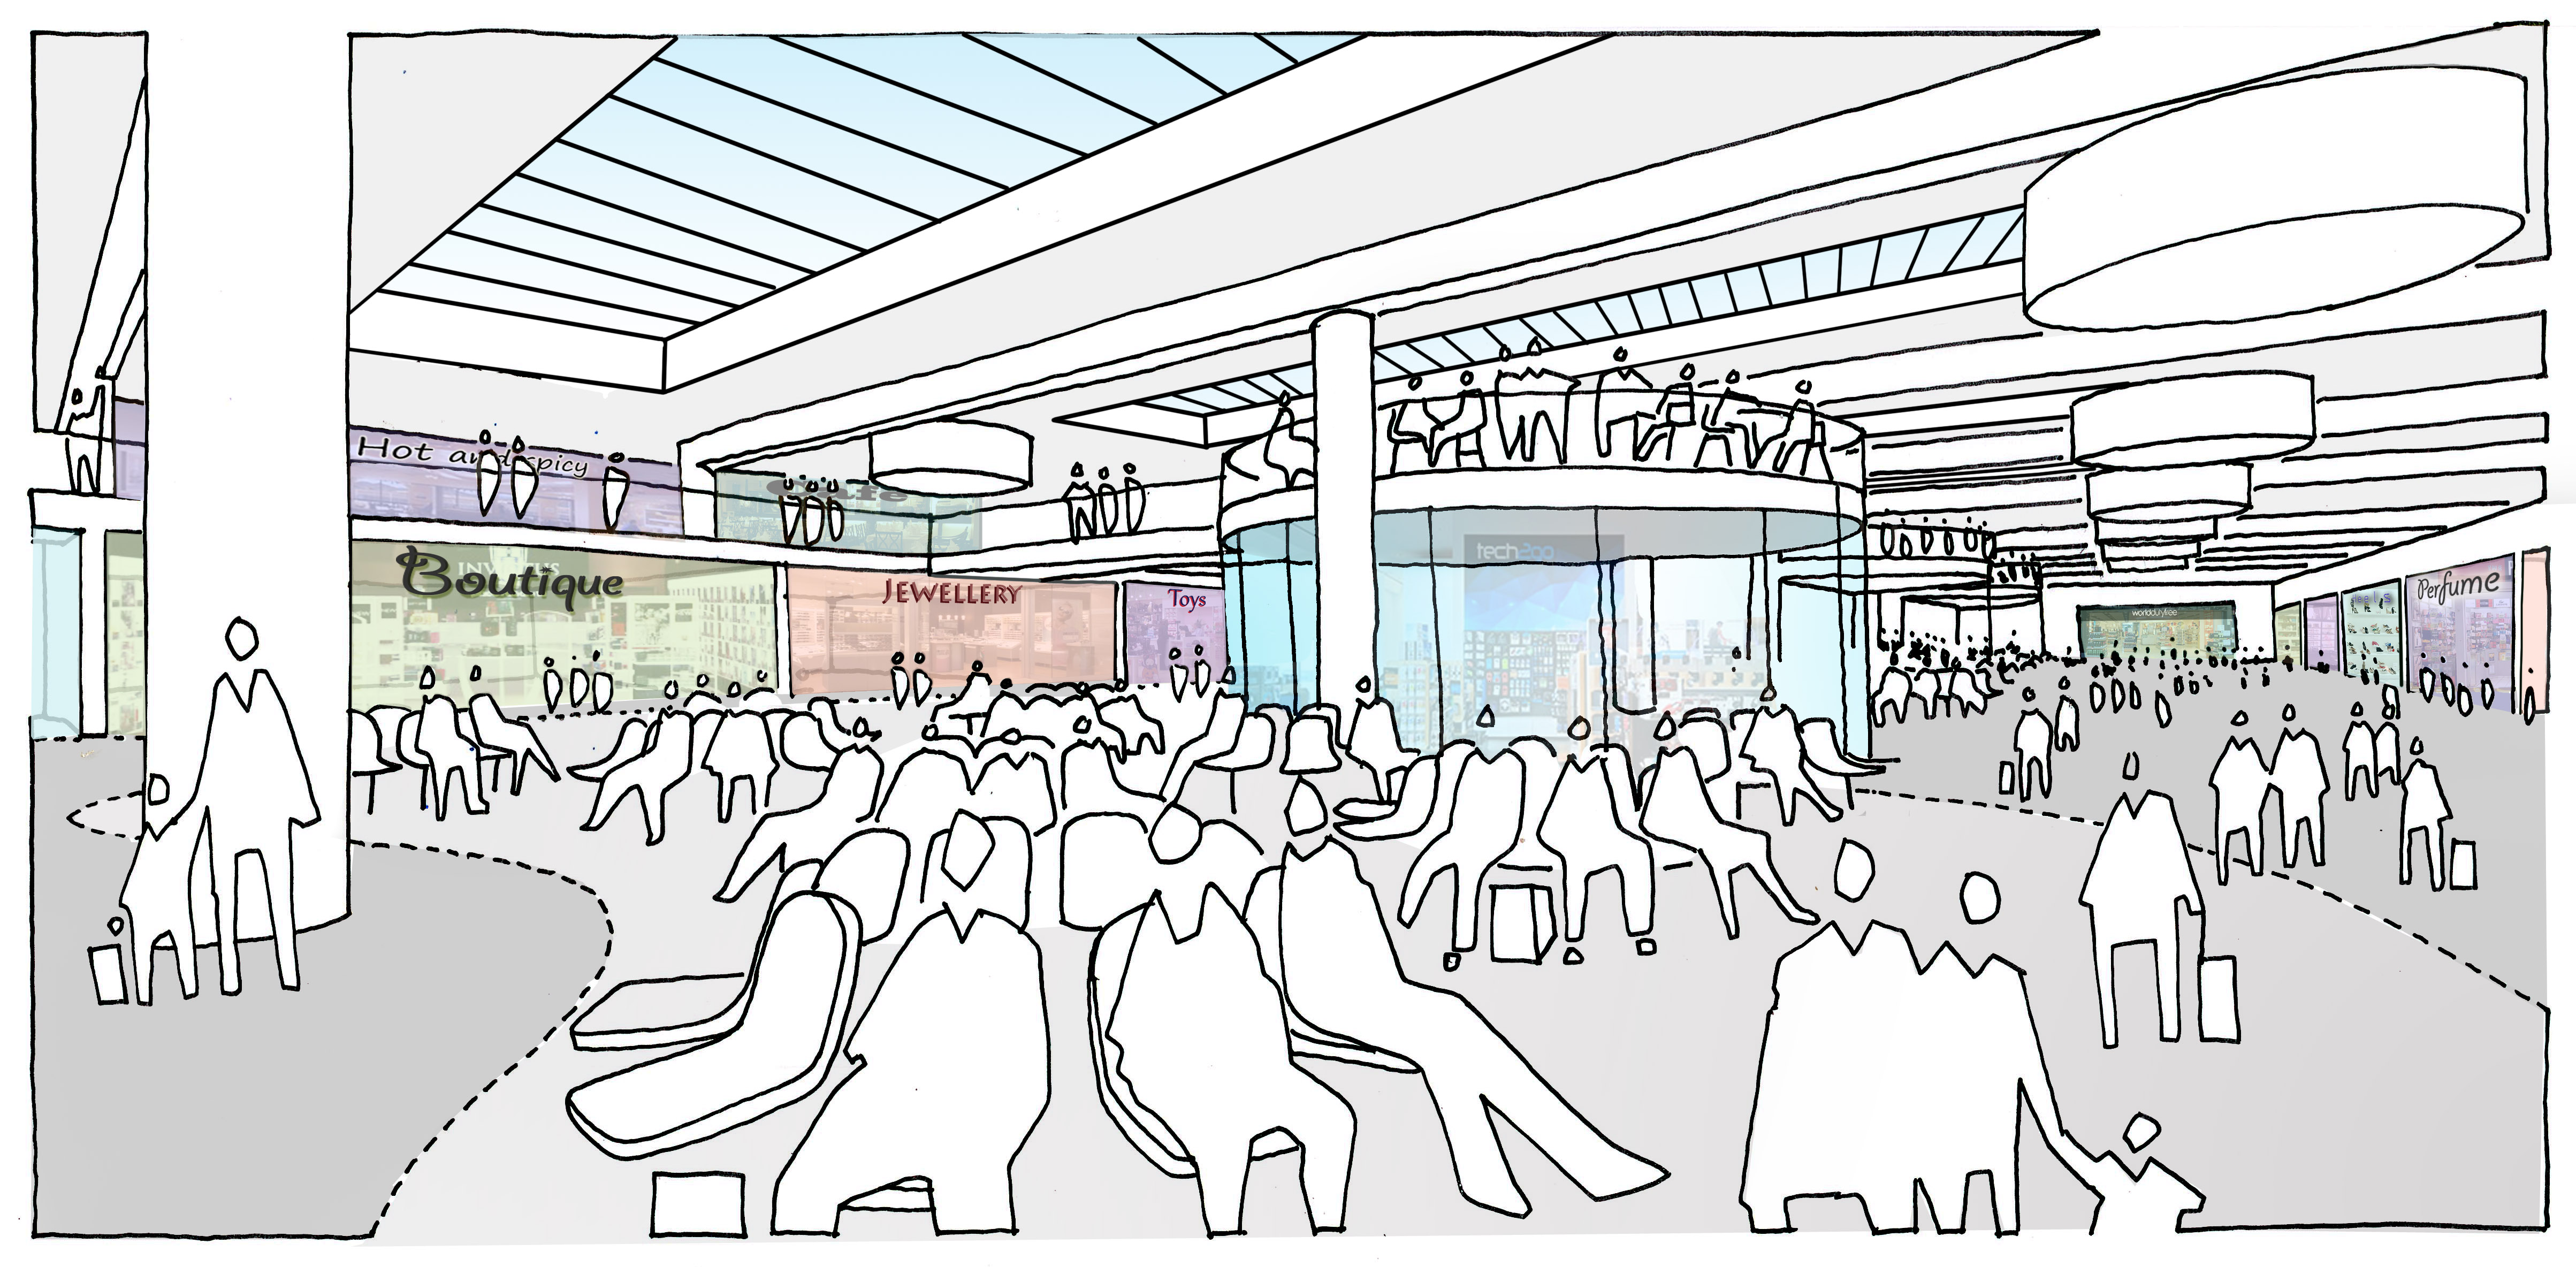 gatwick north airport architect drawings